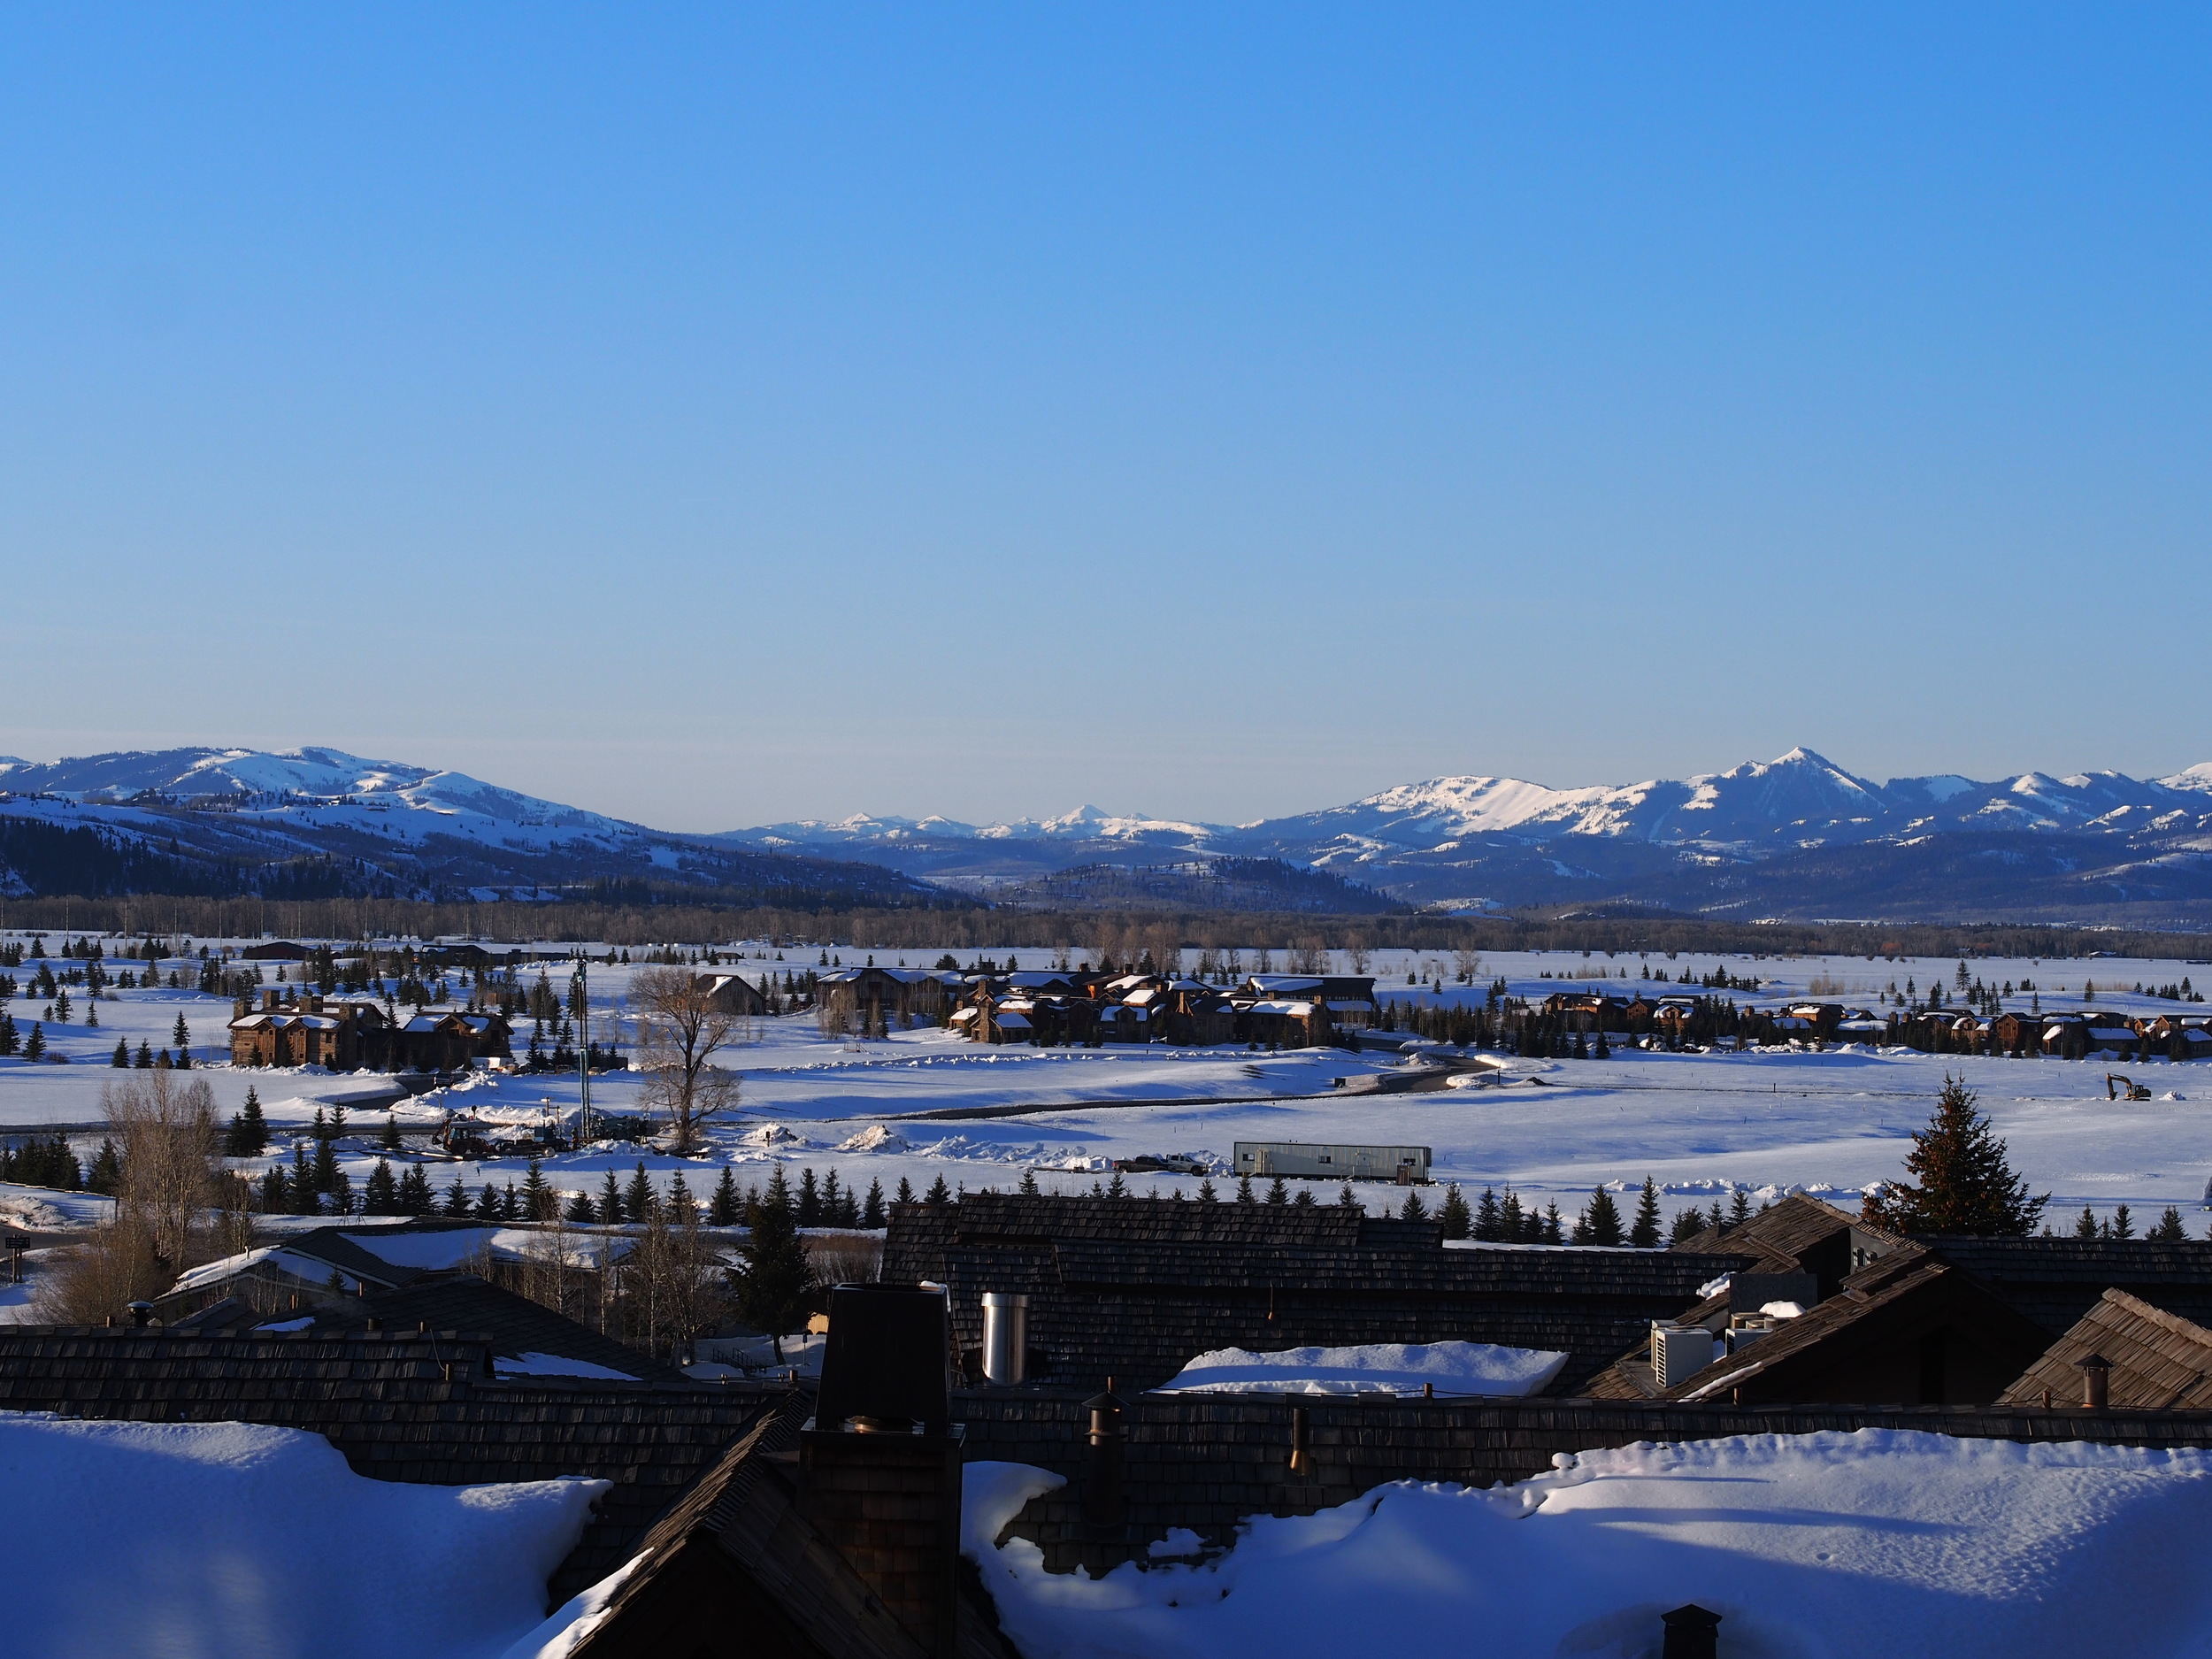 Early morning view of Teton Village from the Four Seasons Resort Jackson Hole